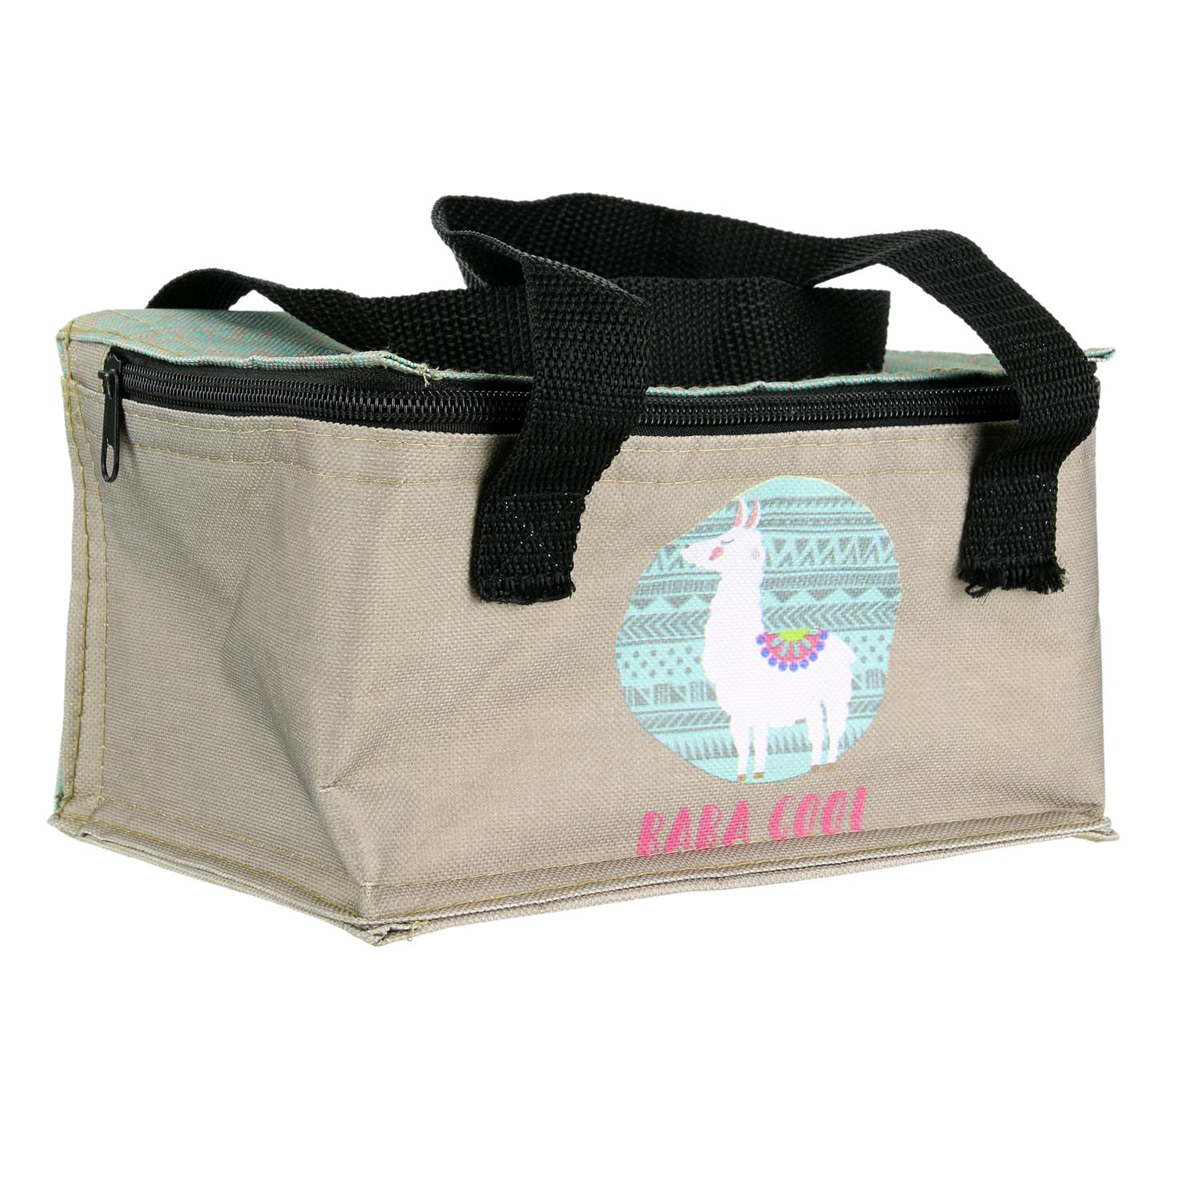 Lunch box / Sac repas isotherme \'Lama Mania\' turquoise beige (baba cool) - 215x145x12 cm - [Q4460]